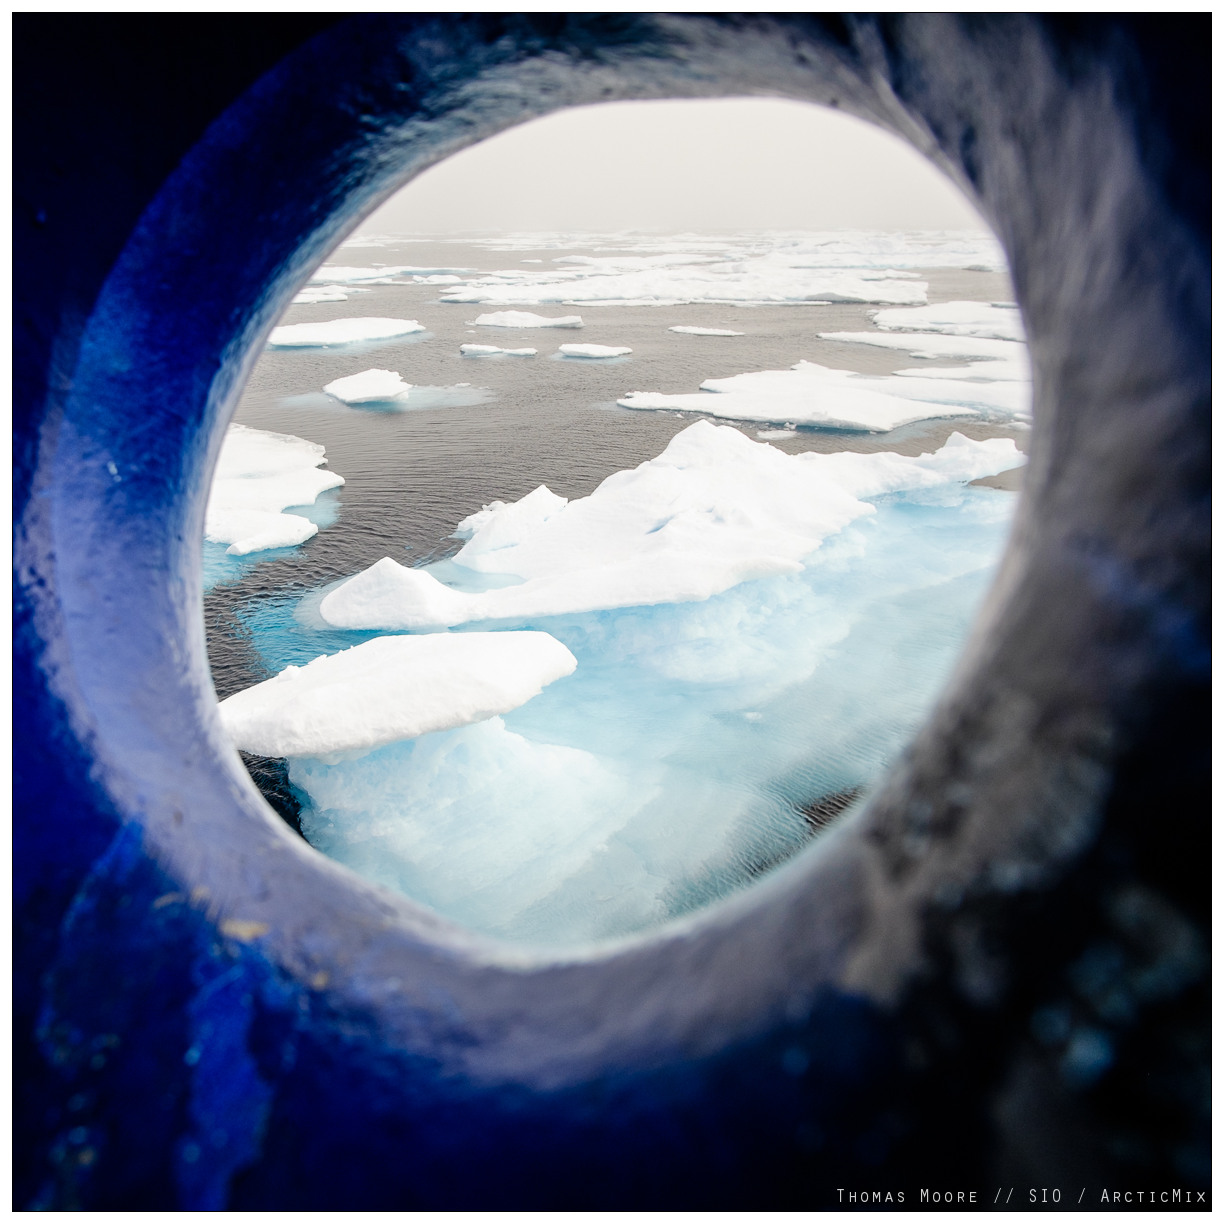 """SODA - In late summer 2018 we will return to the Arctic as part of the multi-institution Office of Naval Research funded """"Stratified Ocean Dynamics of the Arctic (SODA)"""" project."""